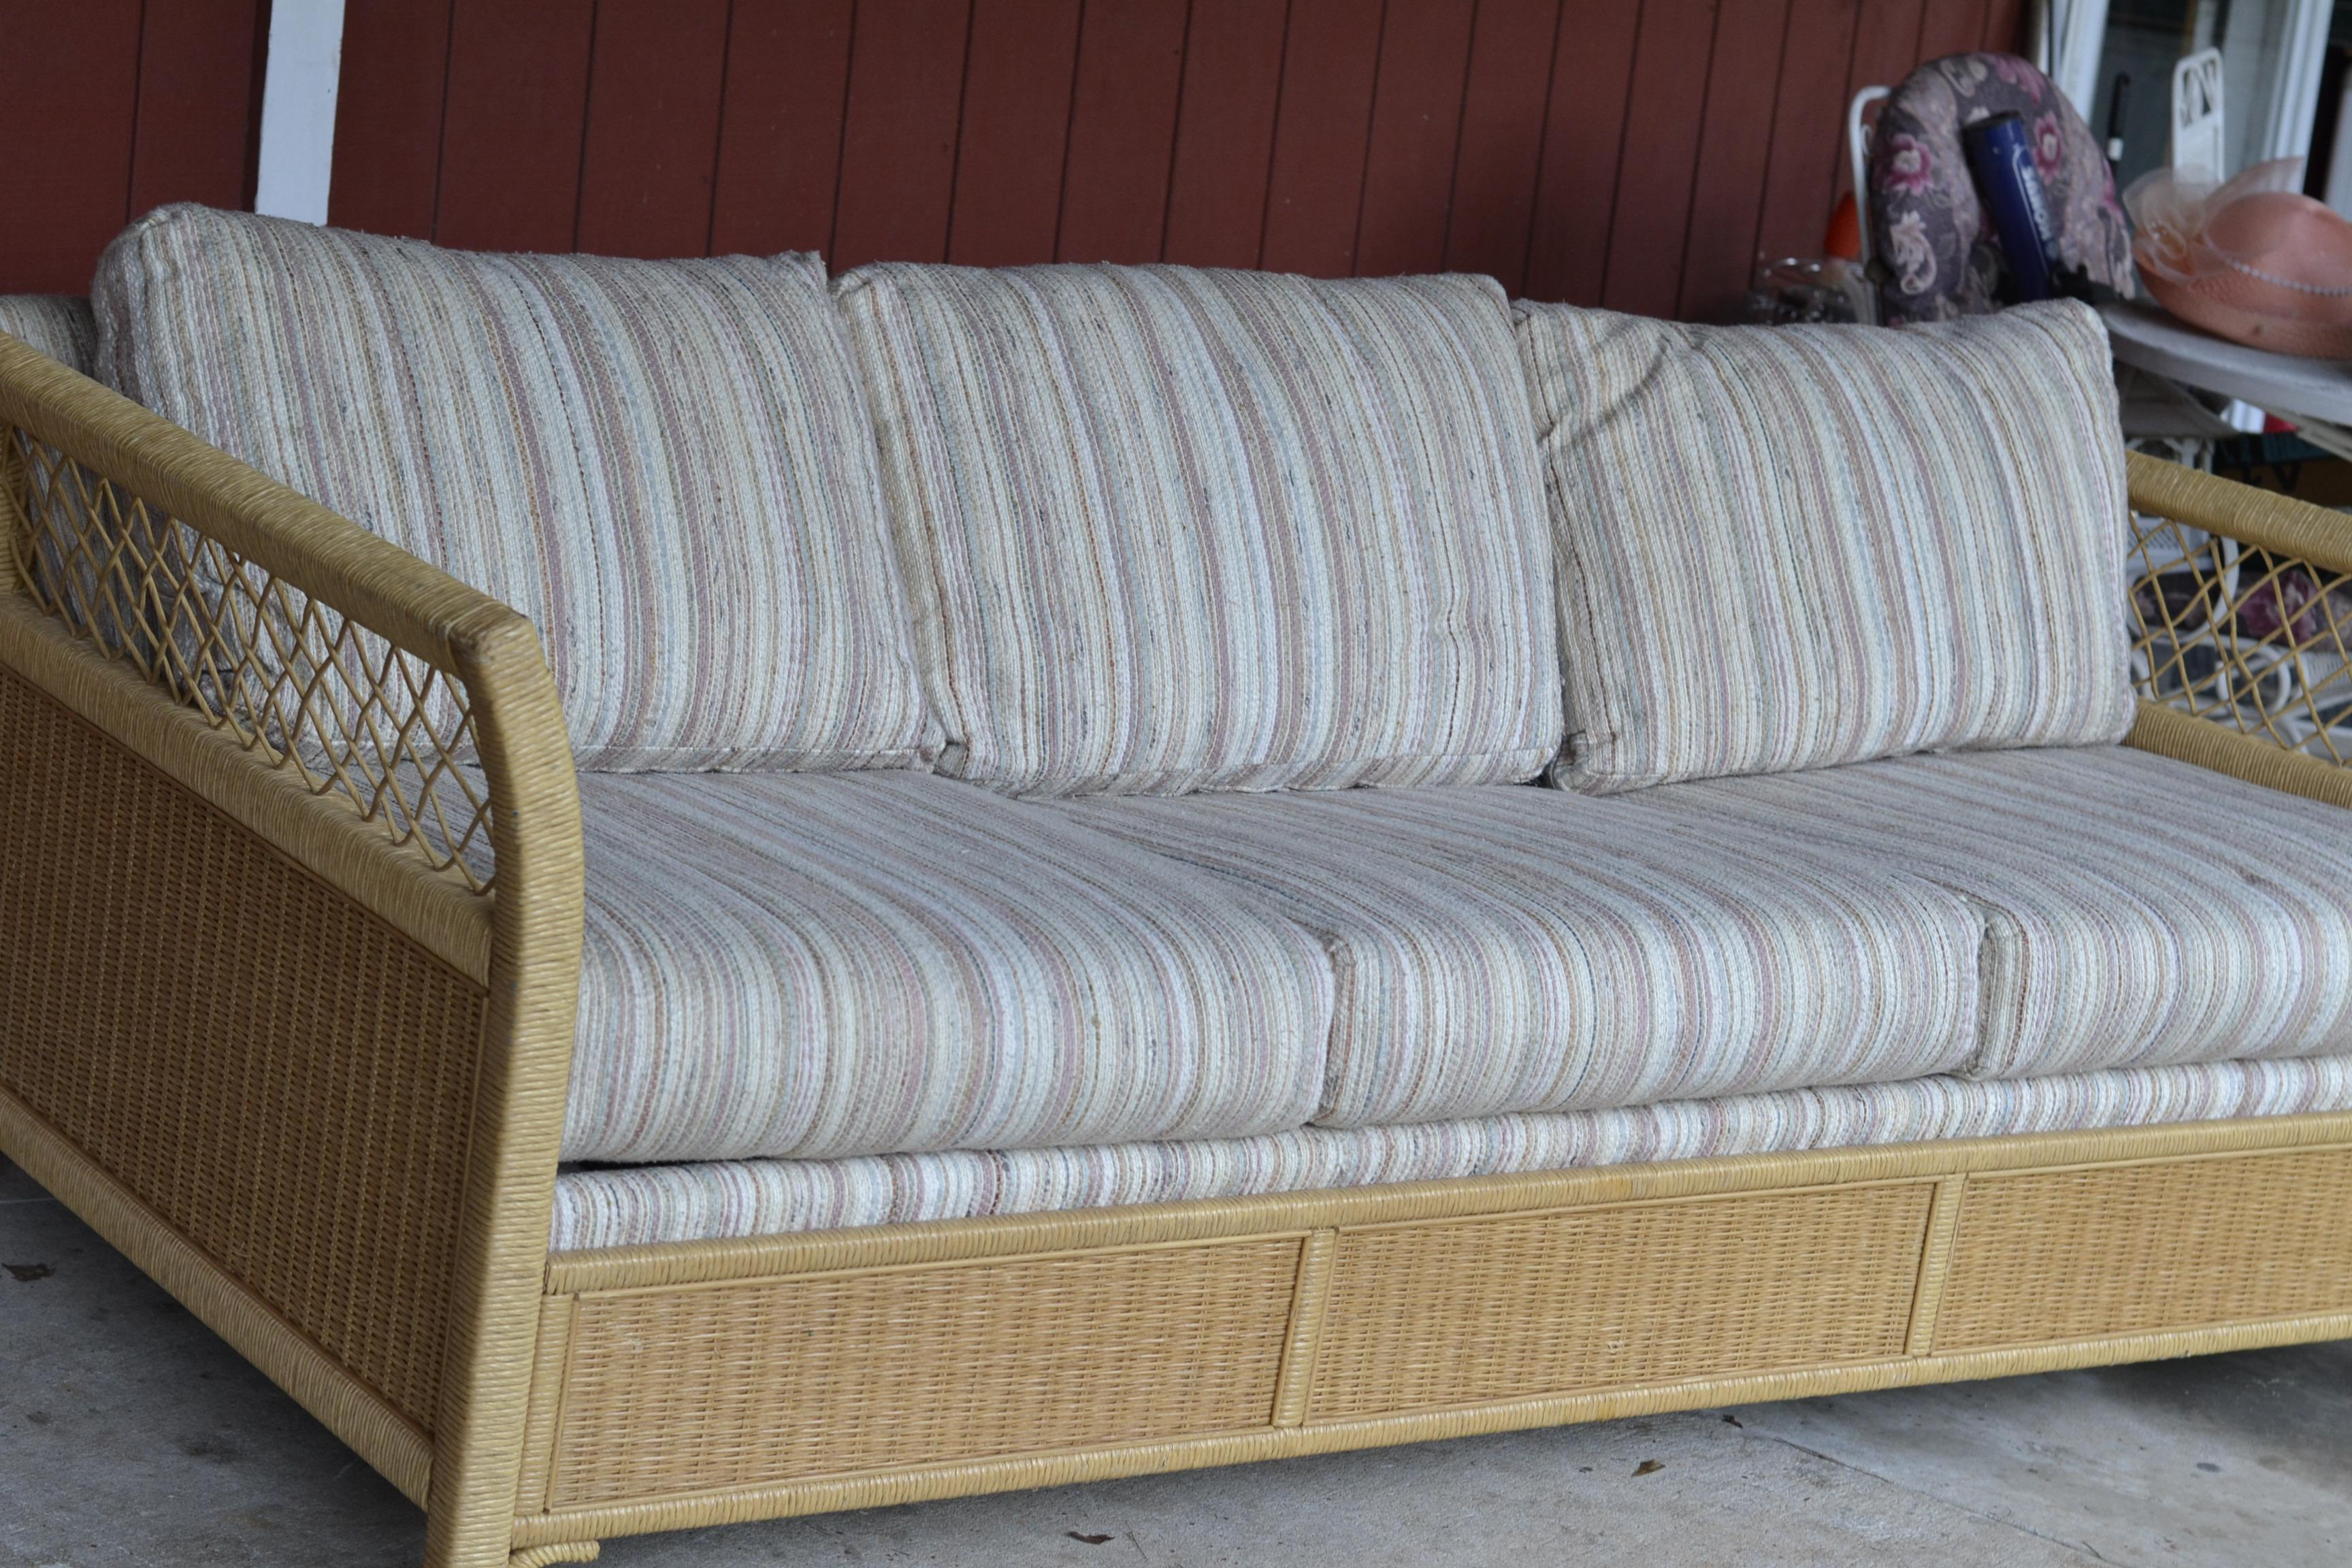 Beau Woven Wicker Rattan Sleeper Sofa By Henry Link For Sale   Image 5 Of 10